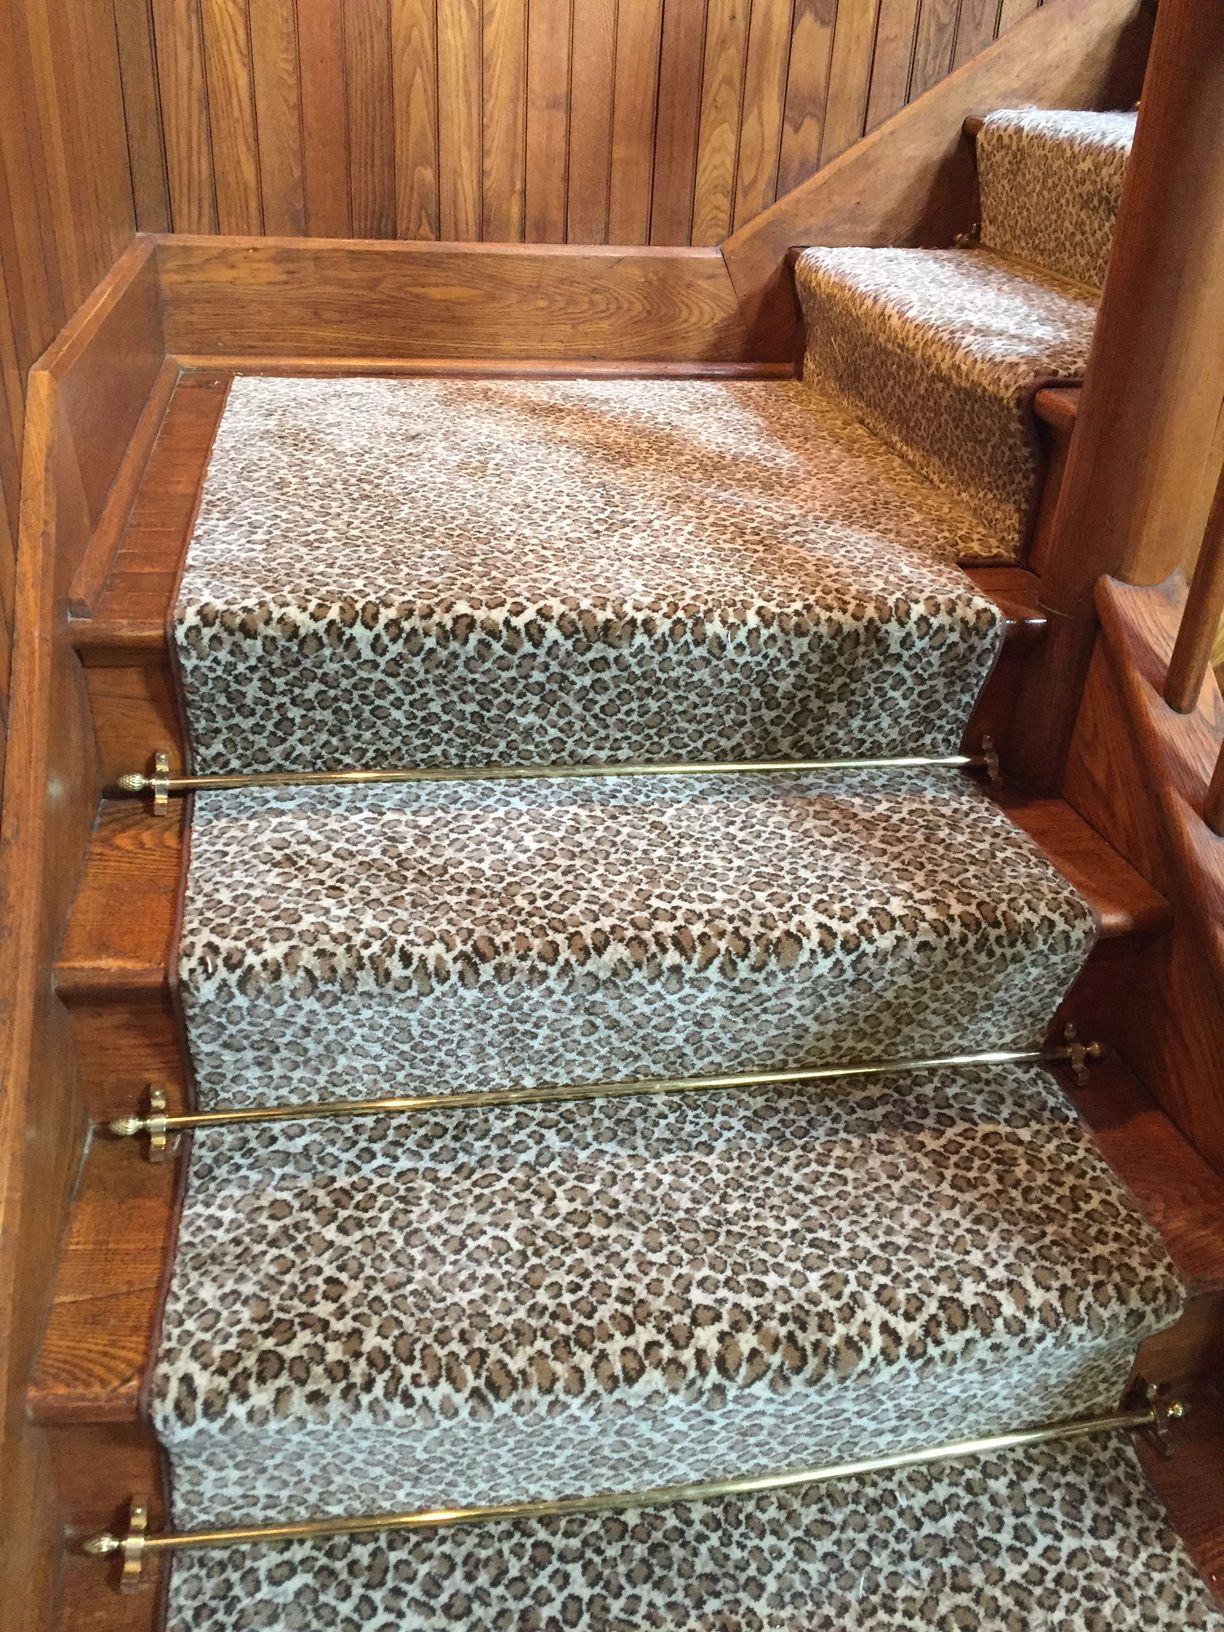 Best Animal Print Carpet On Steps As Runner With Decorative 640 x 480